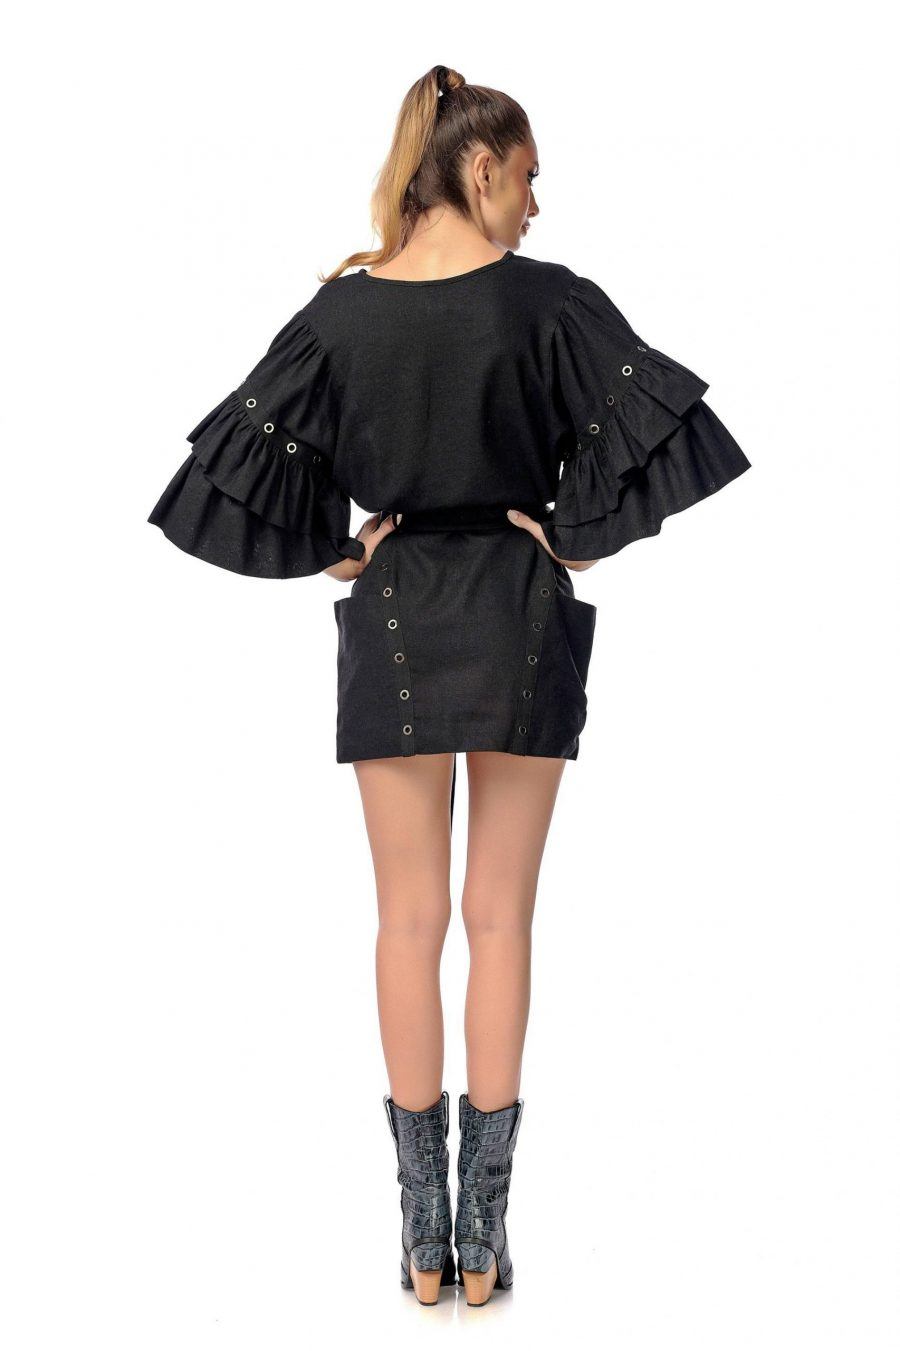 black-short-dress-with-puffy-sleeves